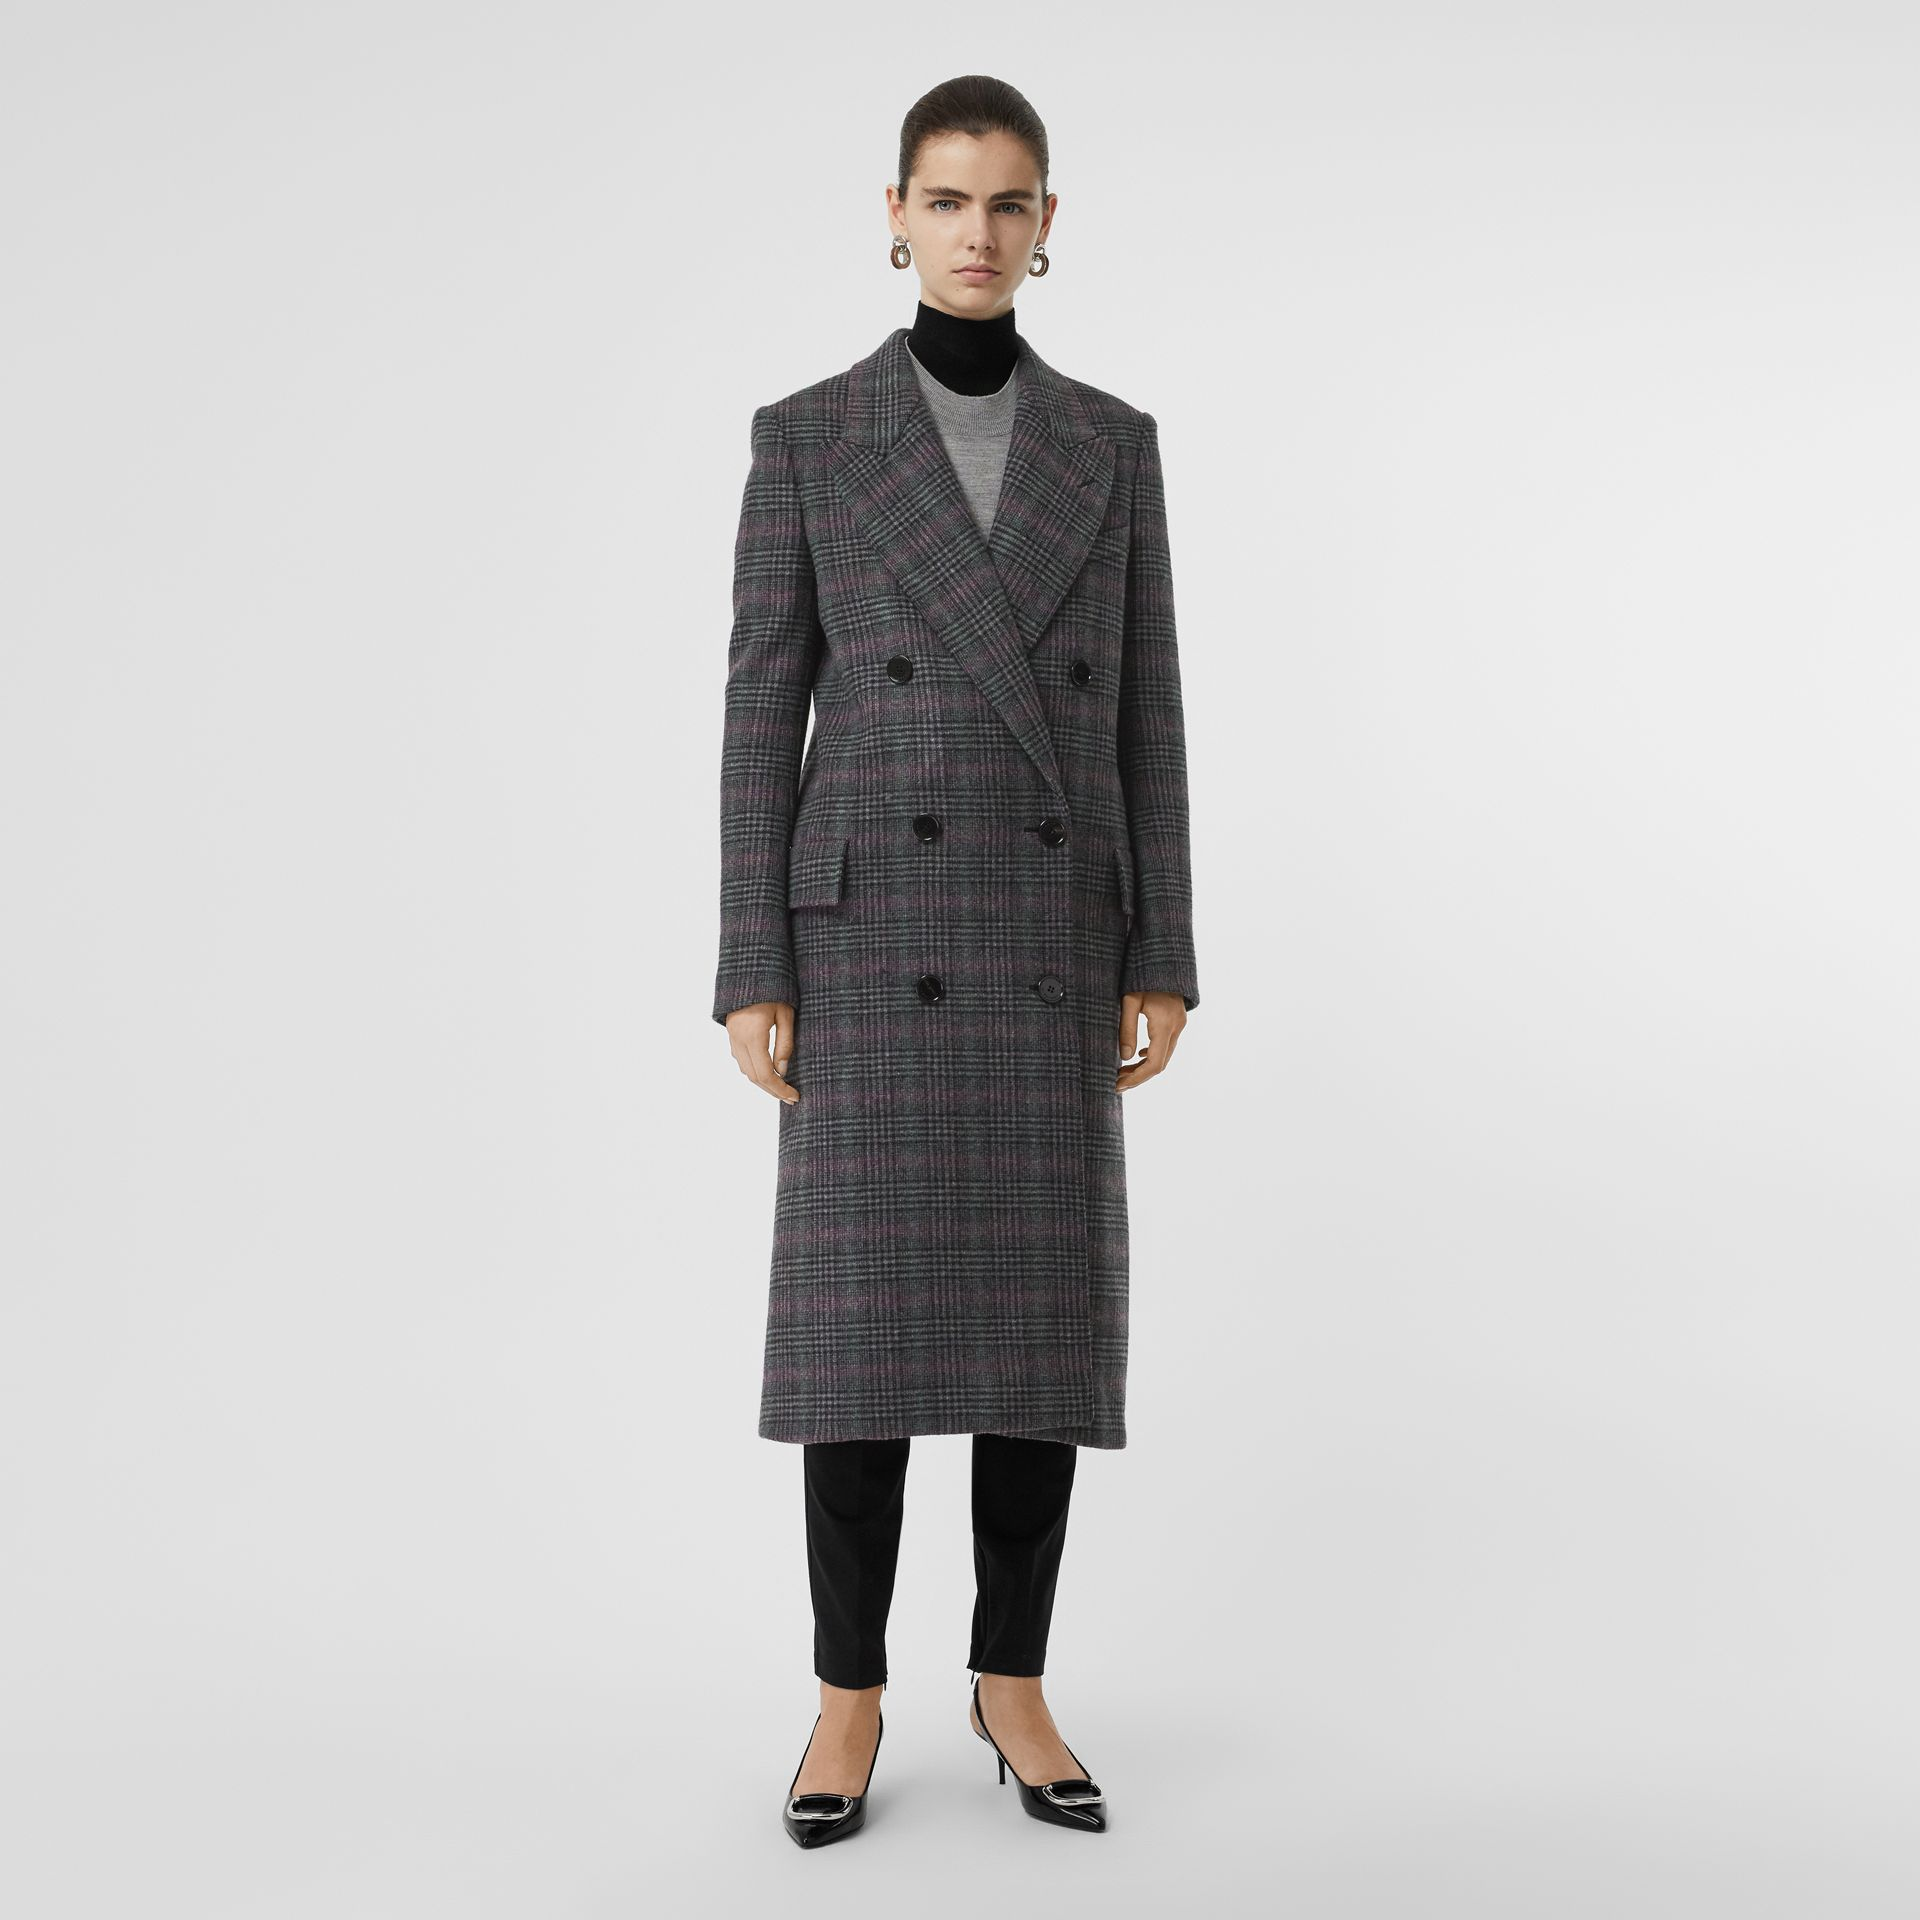 Prince of Wales Check Wool Tailored Coat in Charcoal - Women | Burberry United States - gallery image 5